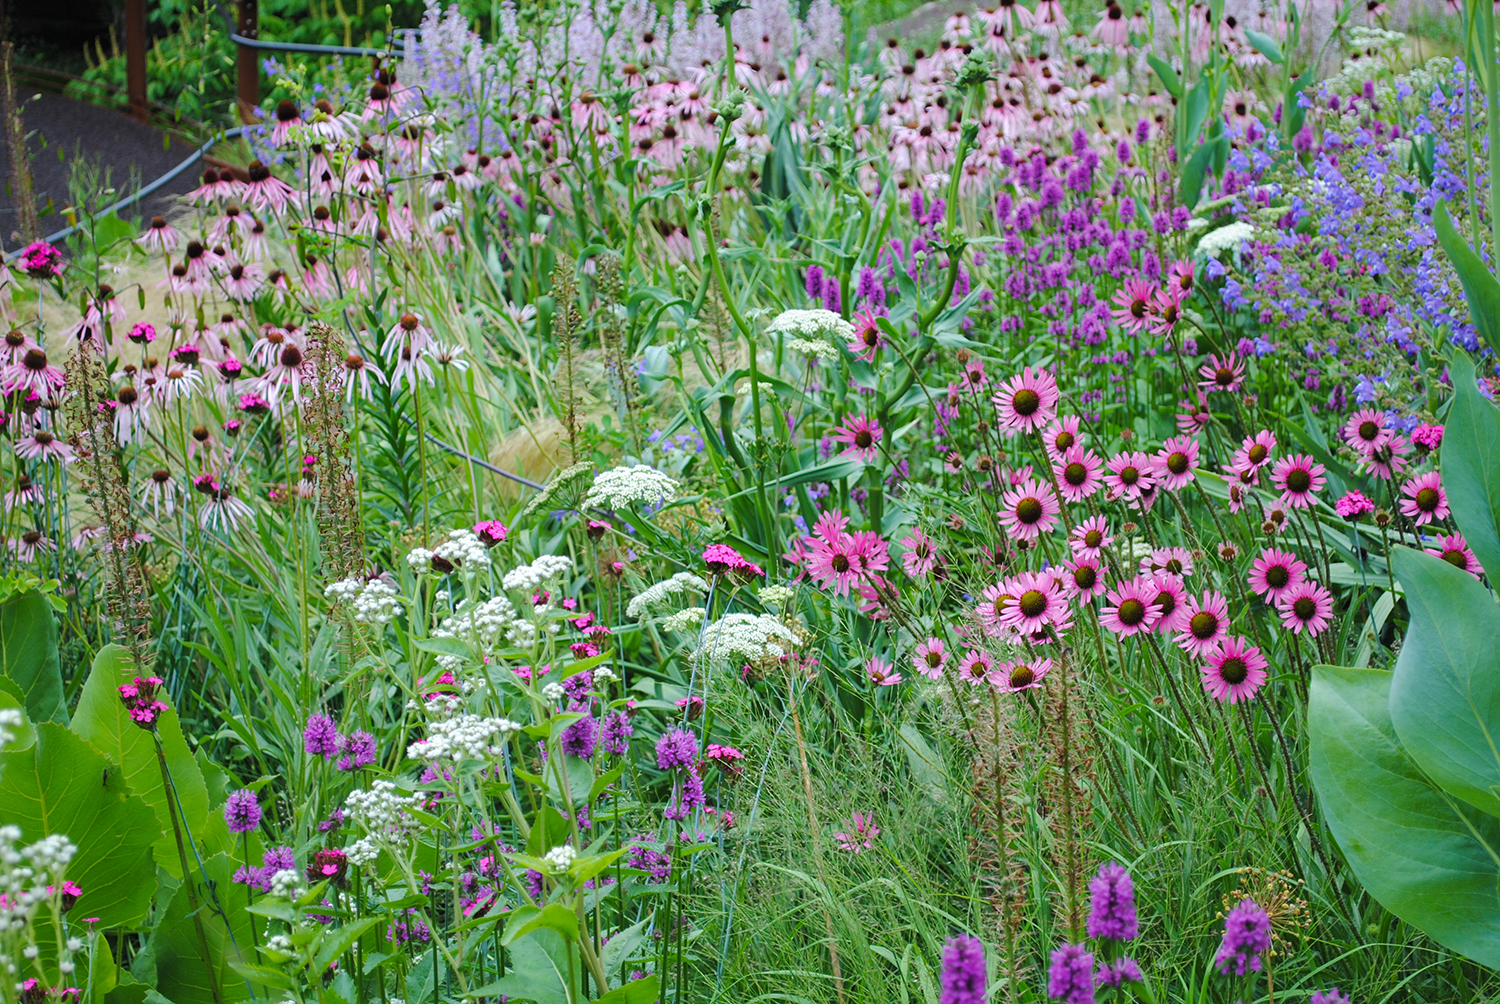 Can you spy the east-facing  Echinacea tennesseensis  'Rocky Top' in this incredible planting at Chanticleer's elevated walkway?  Hint, it's on the right.  Compare these blooms where the ray florets curve upward with the typical  Echinacea  at the back left of the image whose outer rays droop.